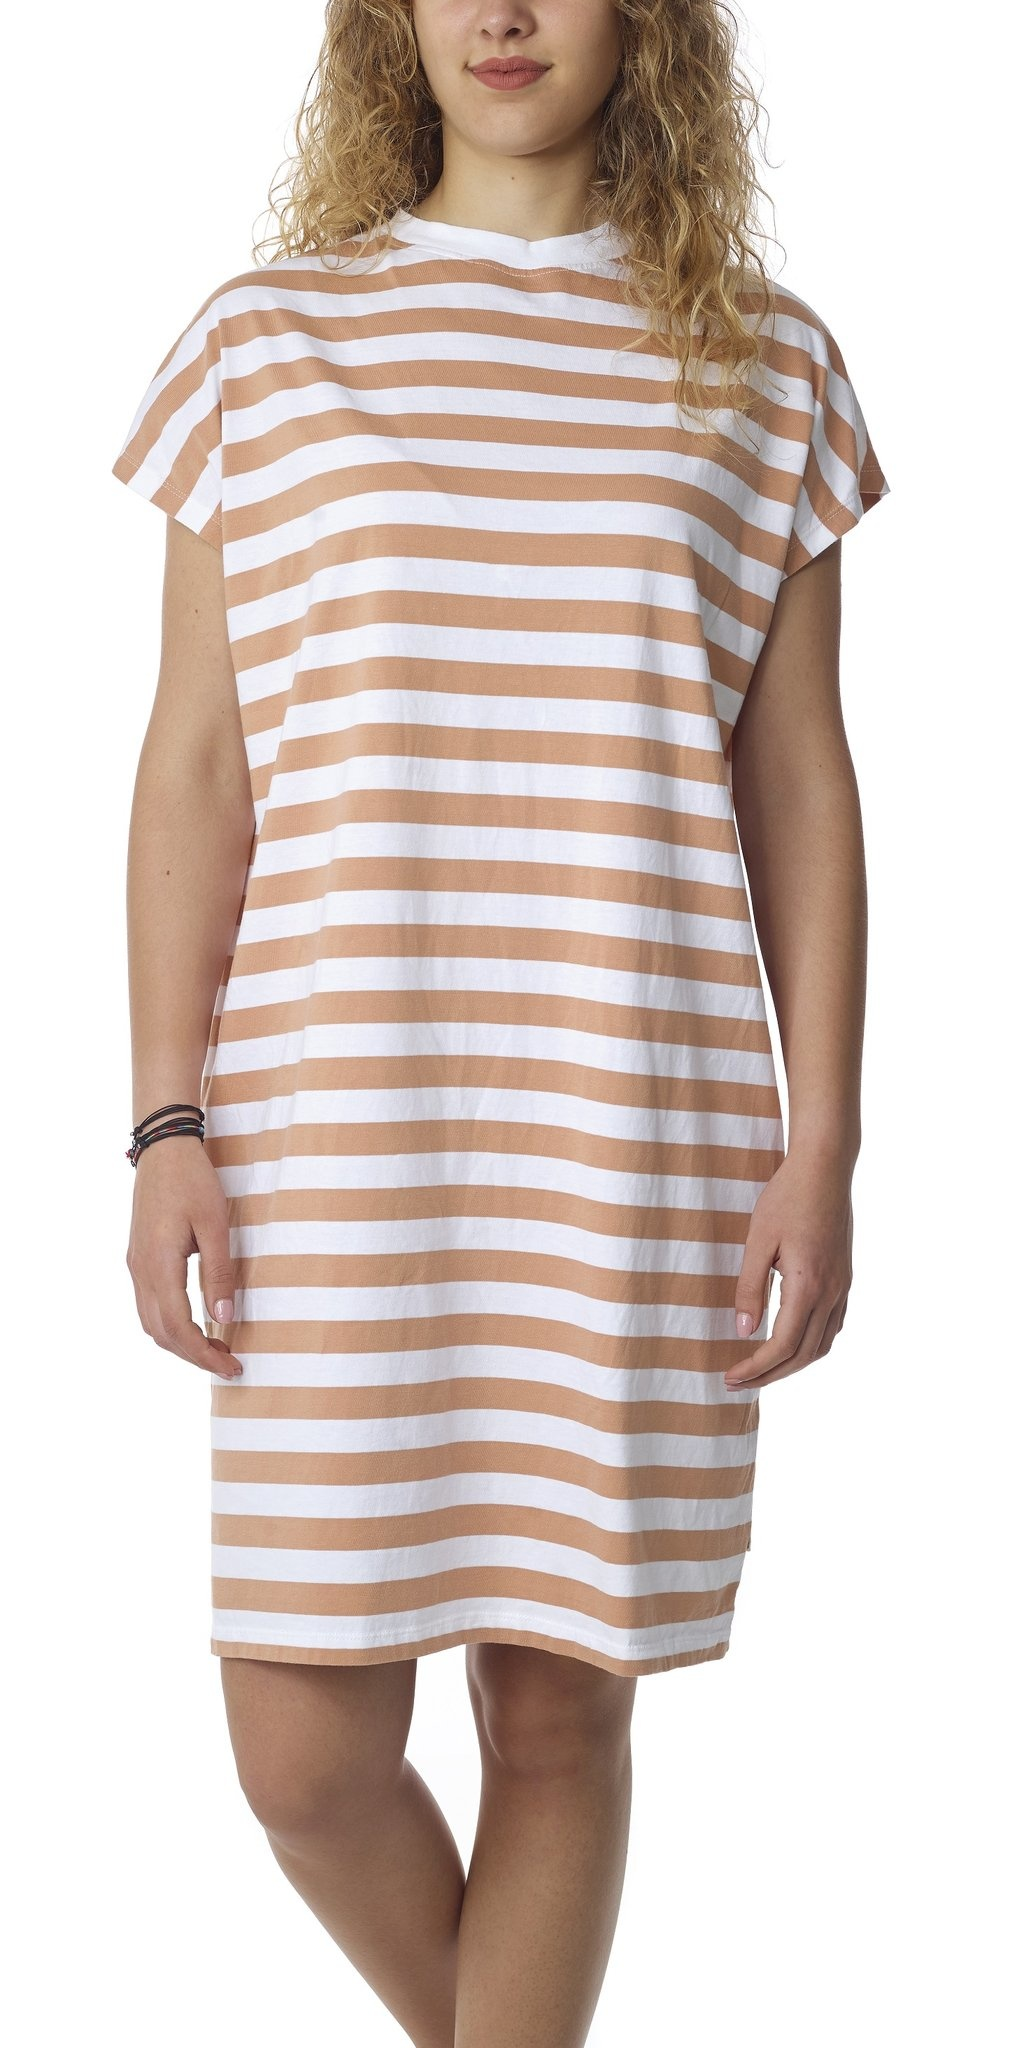 Seapath Seapath Line Dress Salmon